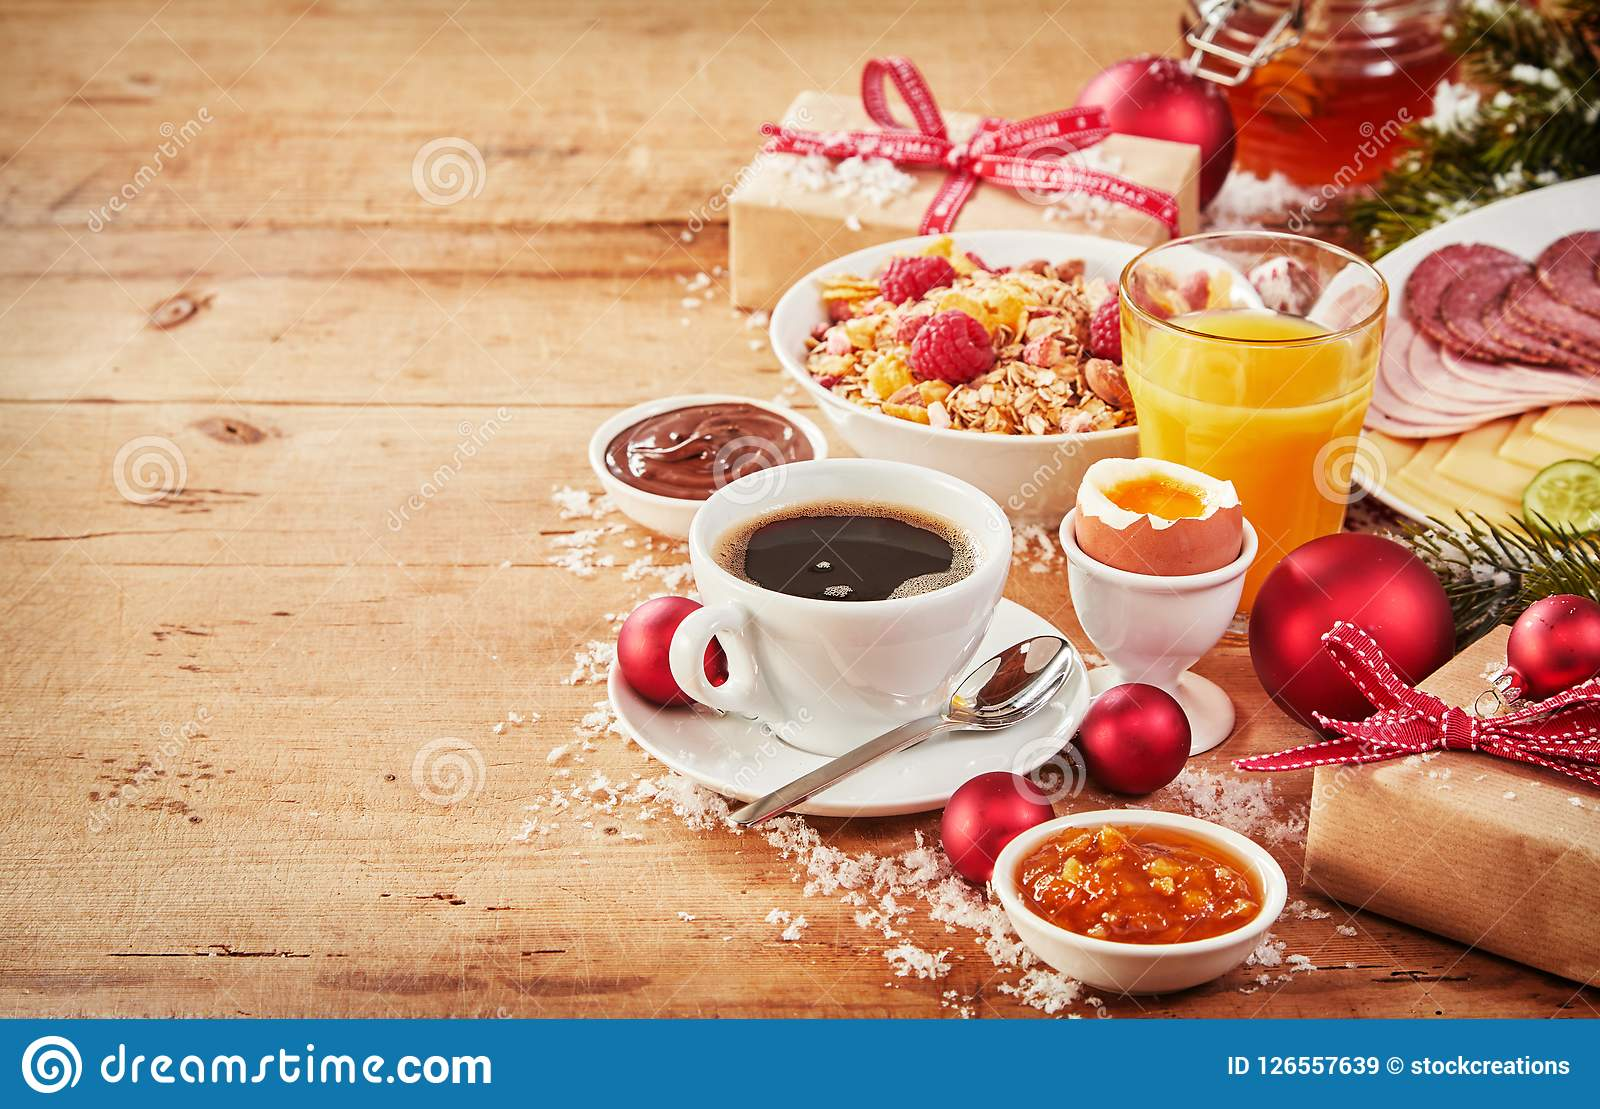 Fresh wholesome healthy Christmas intercontinental breakfast with gifts and decorations arranged to the side on a rustic wood table with copy space  sc 1 st  Dreamstime.com & Christmas Breakfast With Gifts And Decorations Stock Image - Image ...